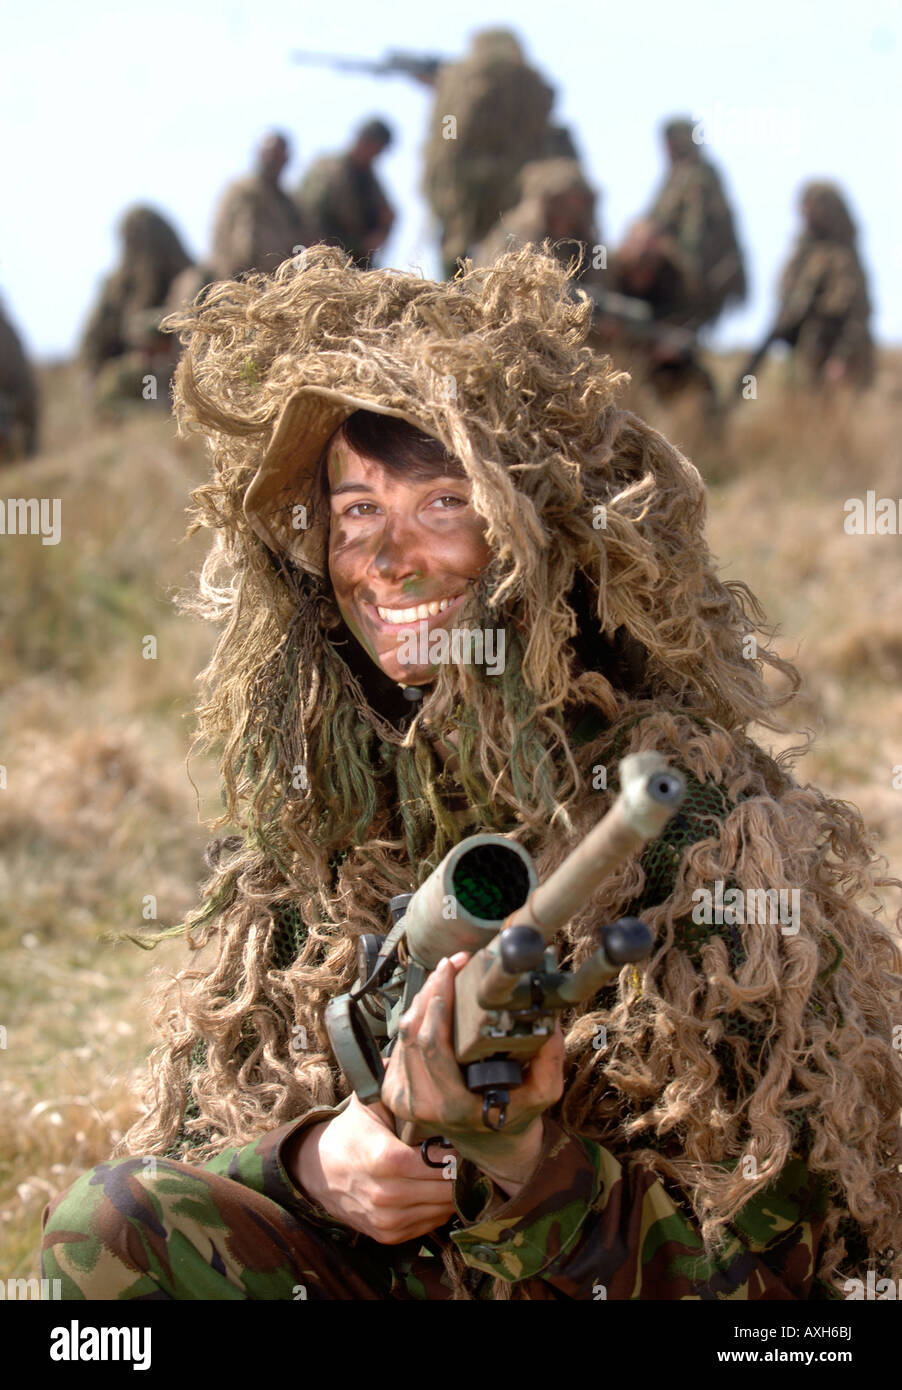 A BRITISH ARMY FEMALE RECRUIT DURING A SNIPER TRAINING COURSE IN BRECON  WALES - Stock Image